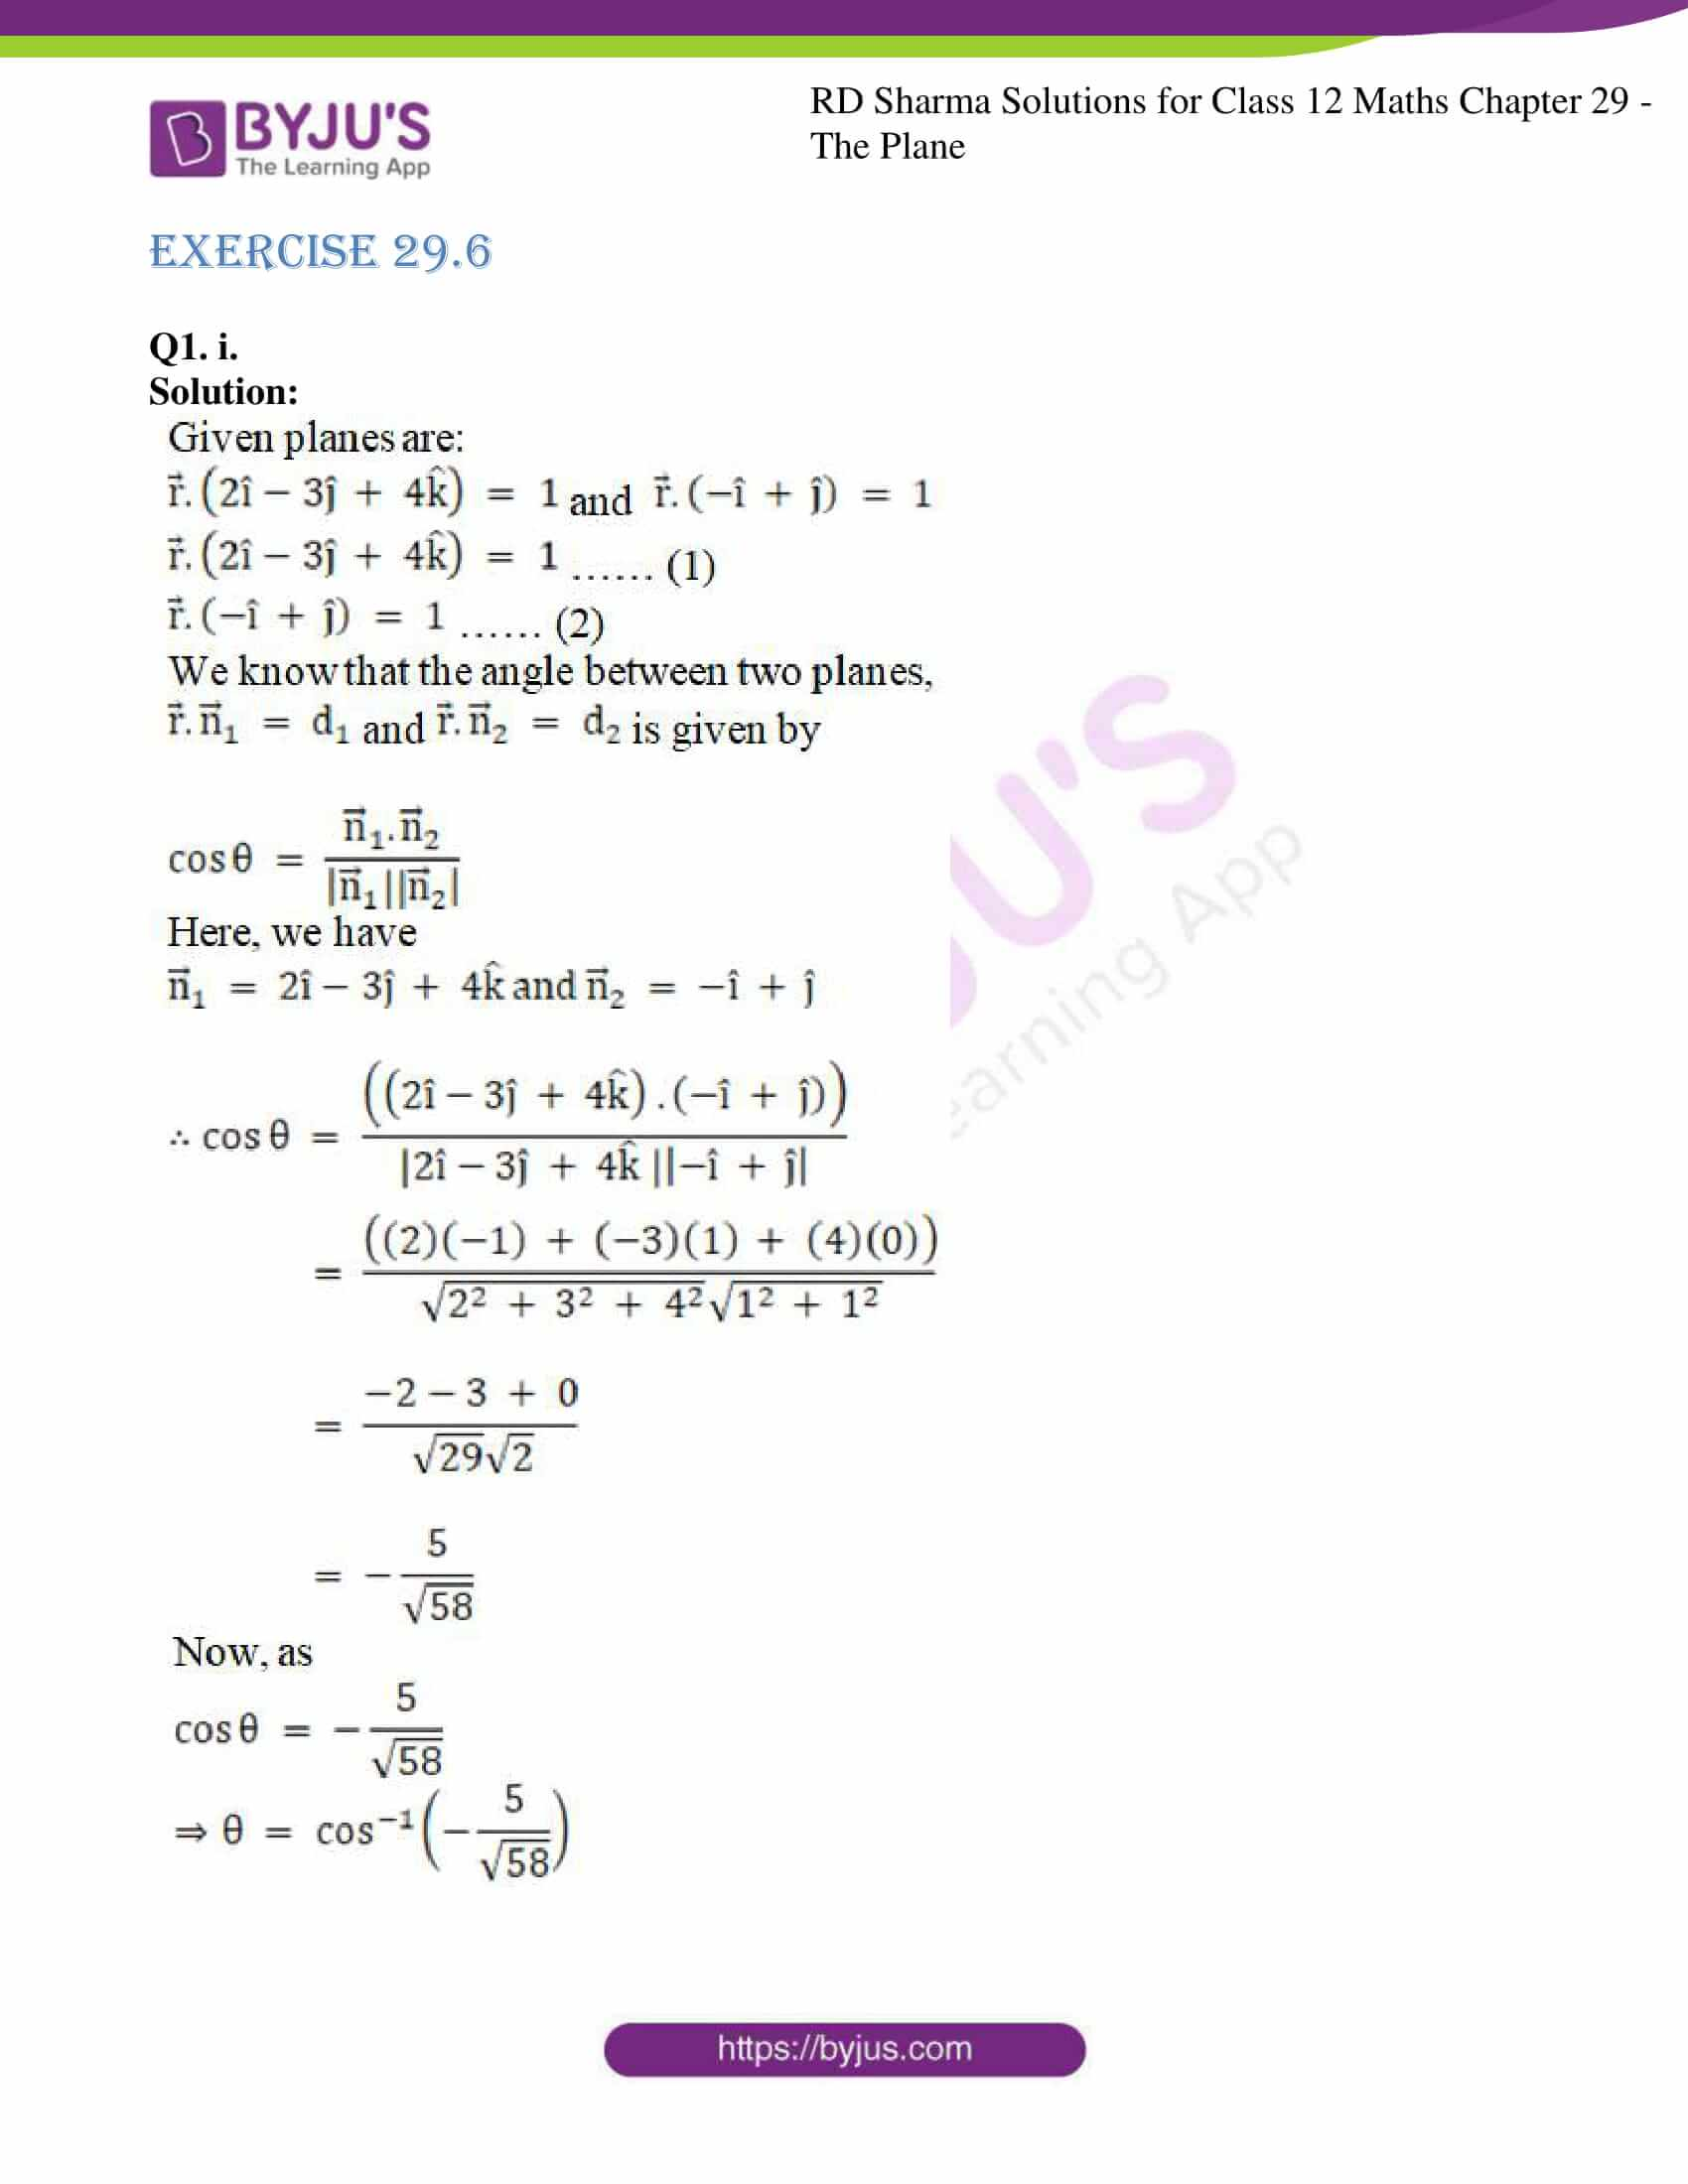 rd sharma solutions for class 12 maths chapter 29 ex 6 01